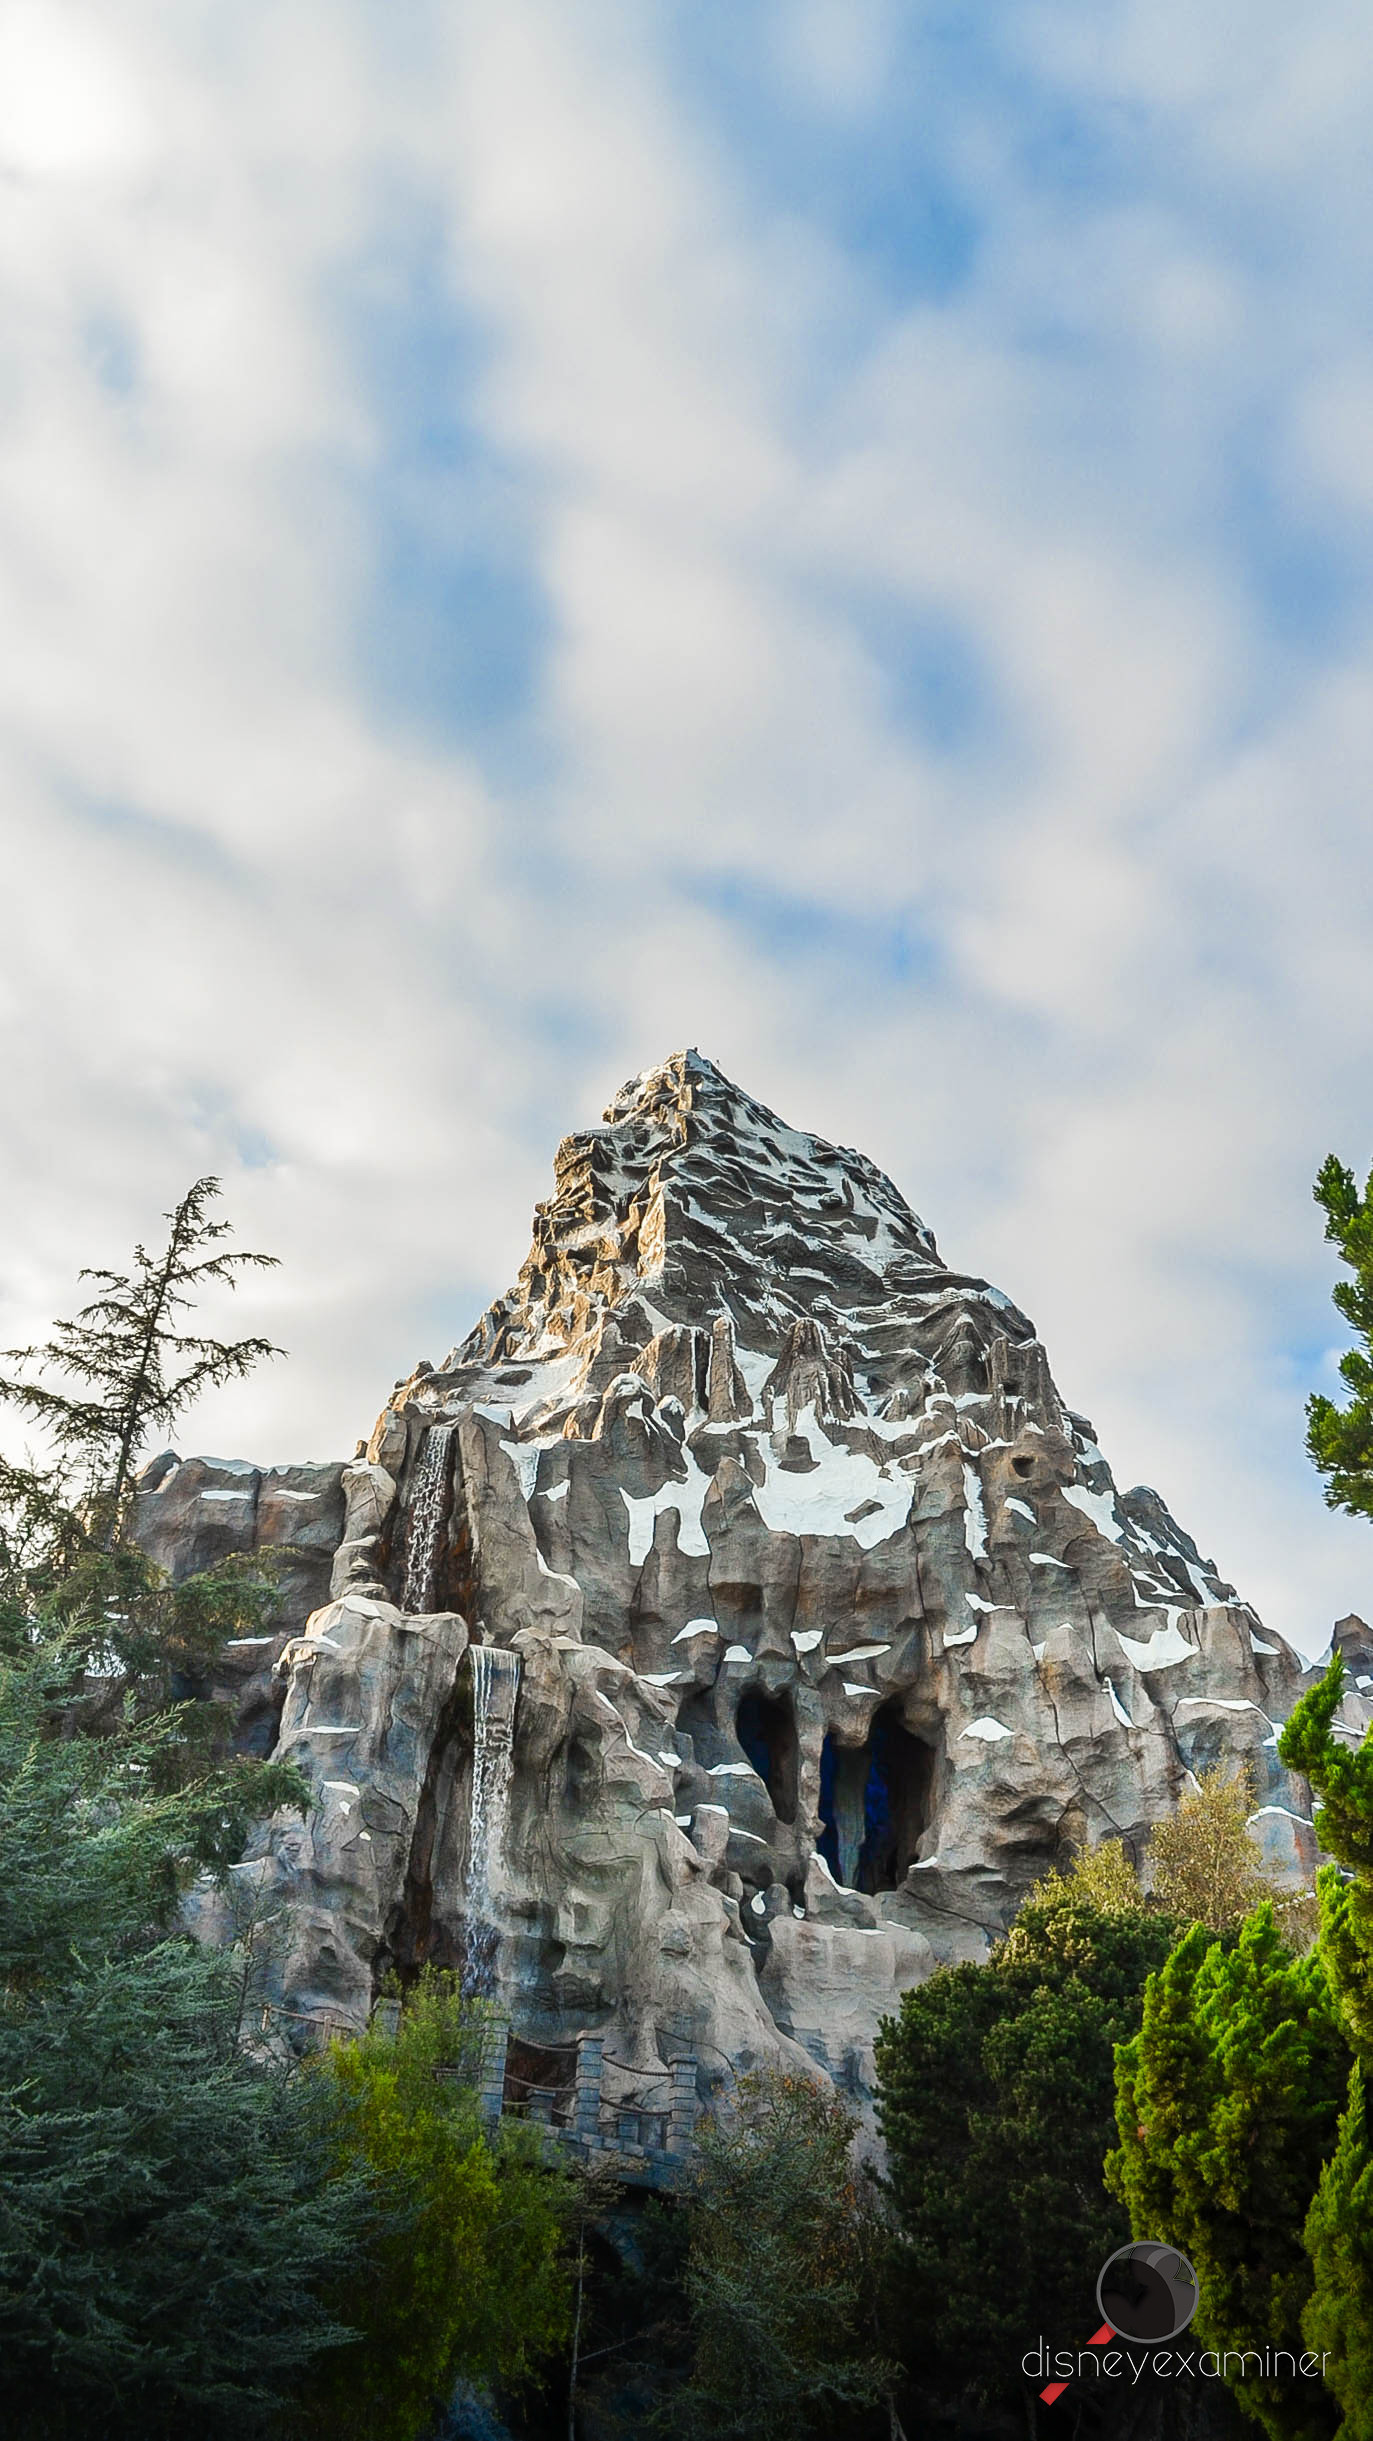 1373x2441 Disneyland Matterhorn Bobsleds Disneyexaminer Mobile Device Wallpaper